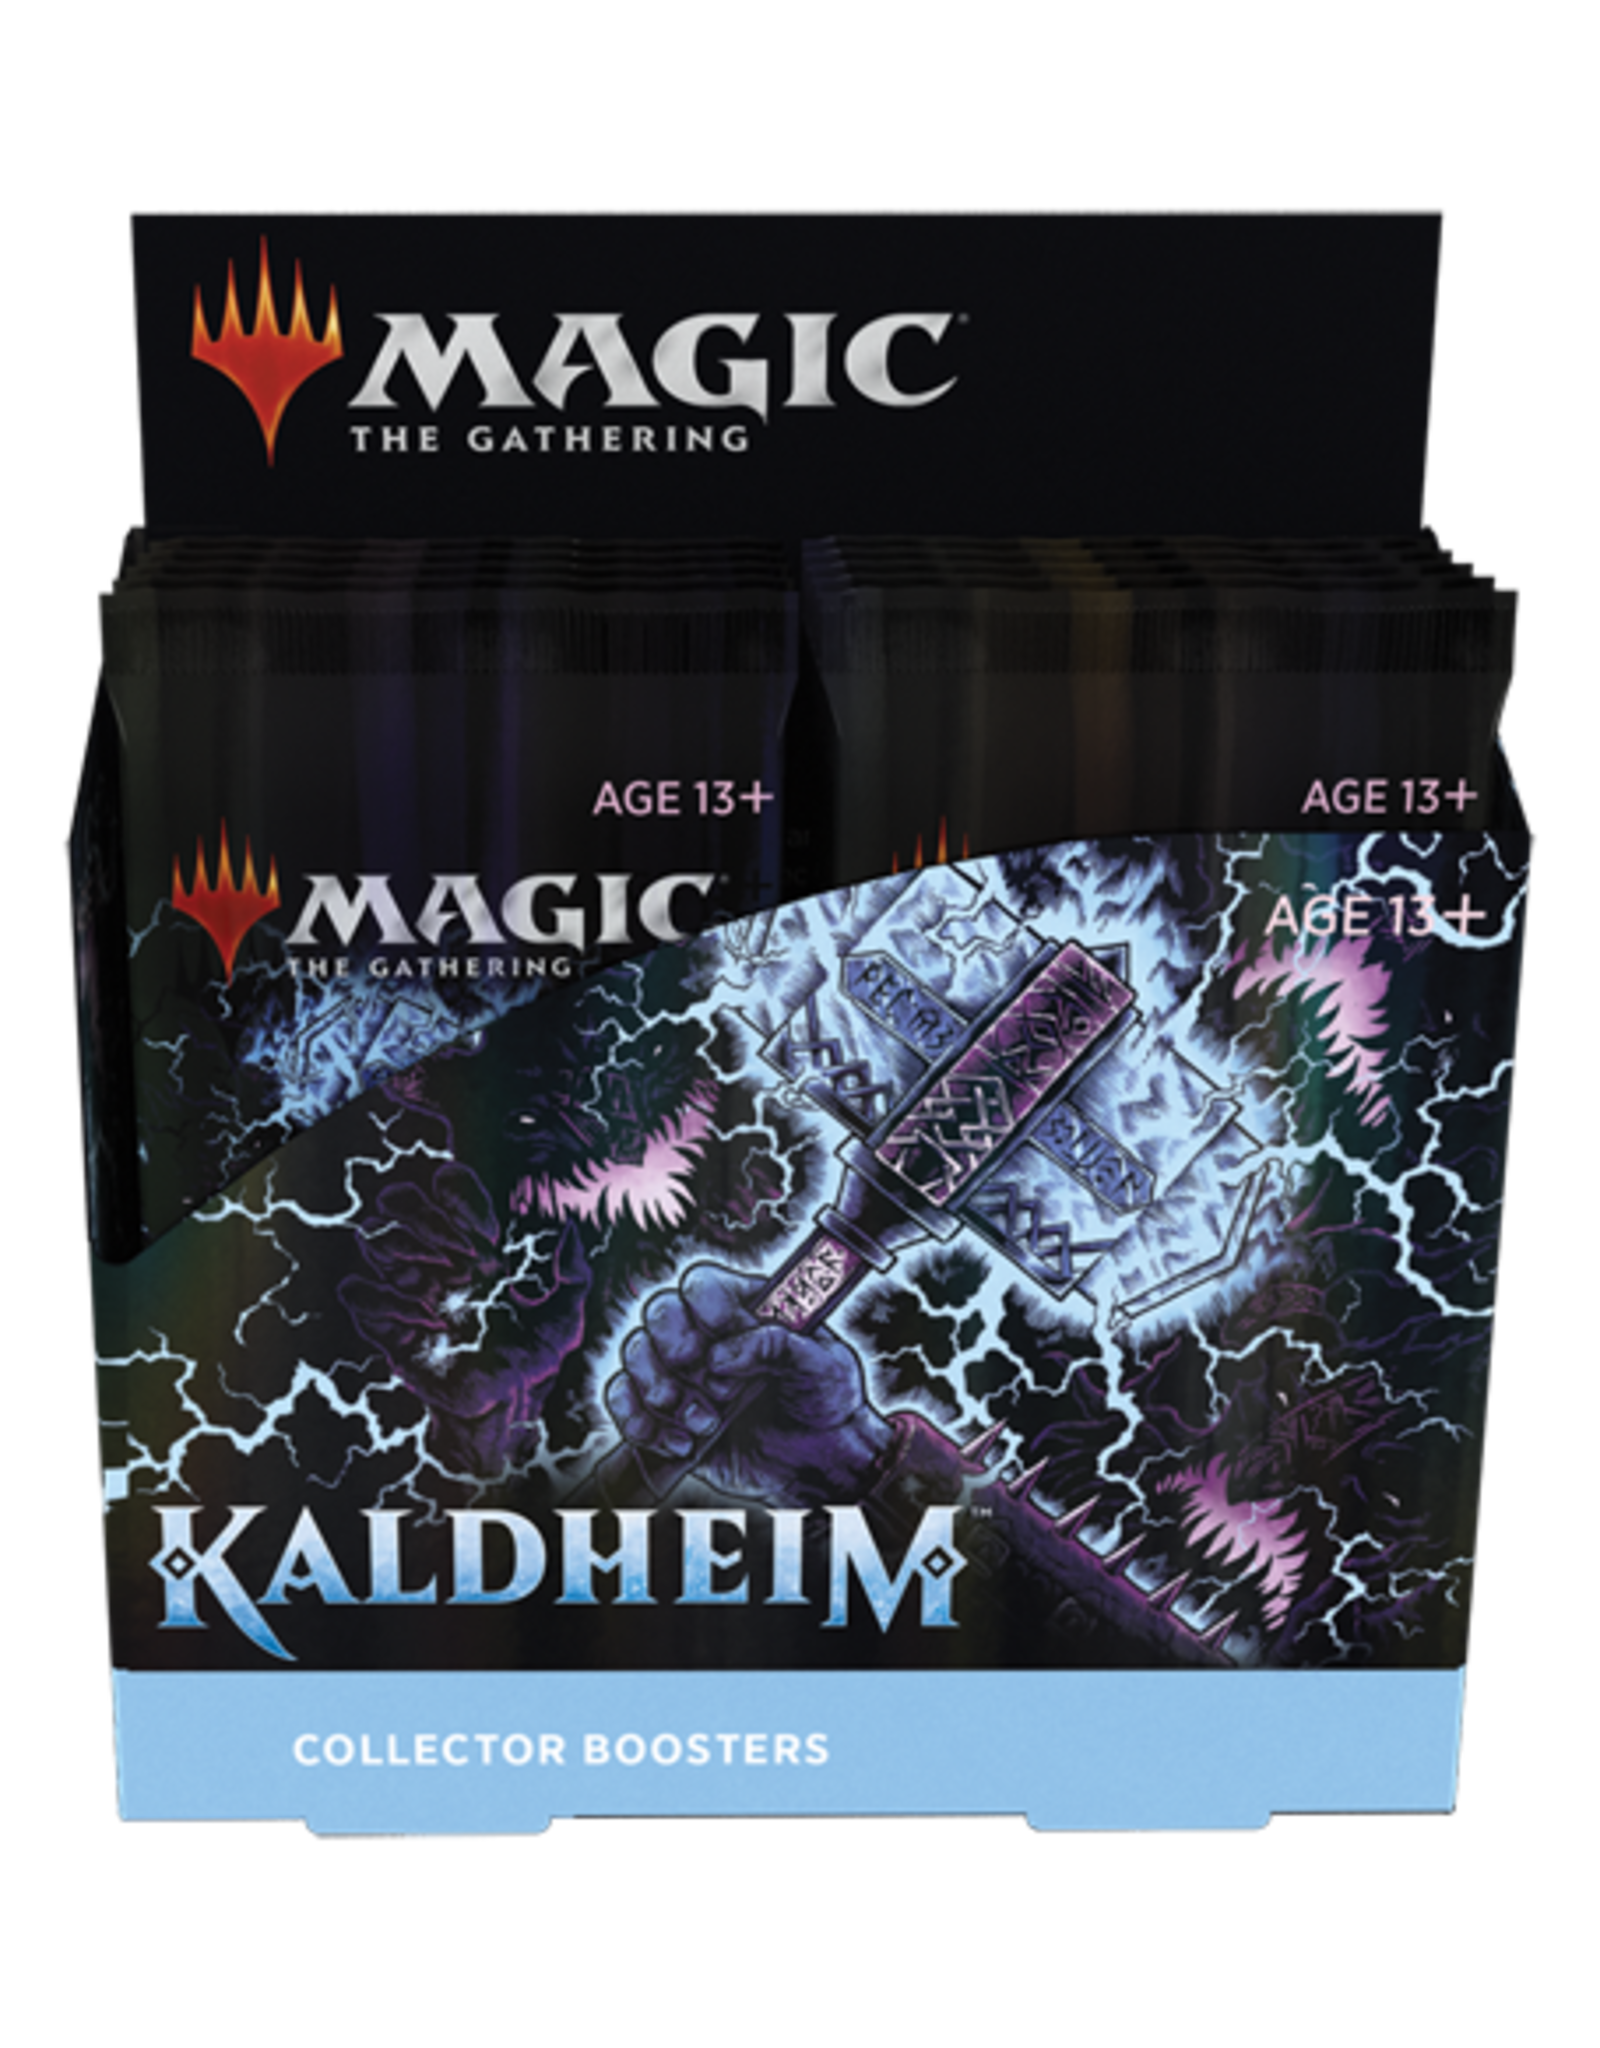 Magic Kaldheim Collector Booster Box